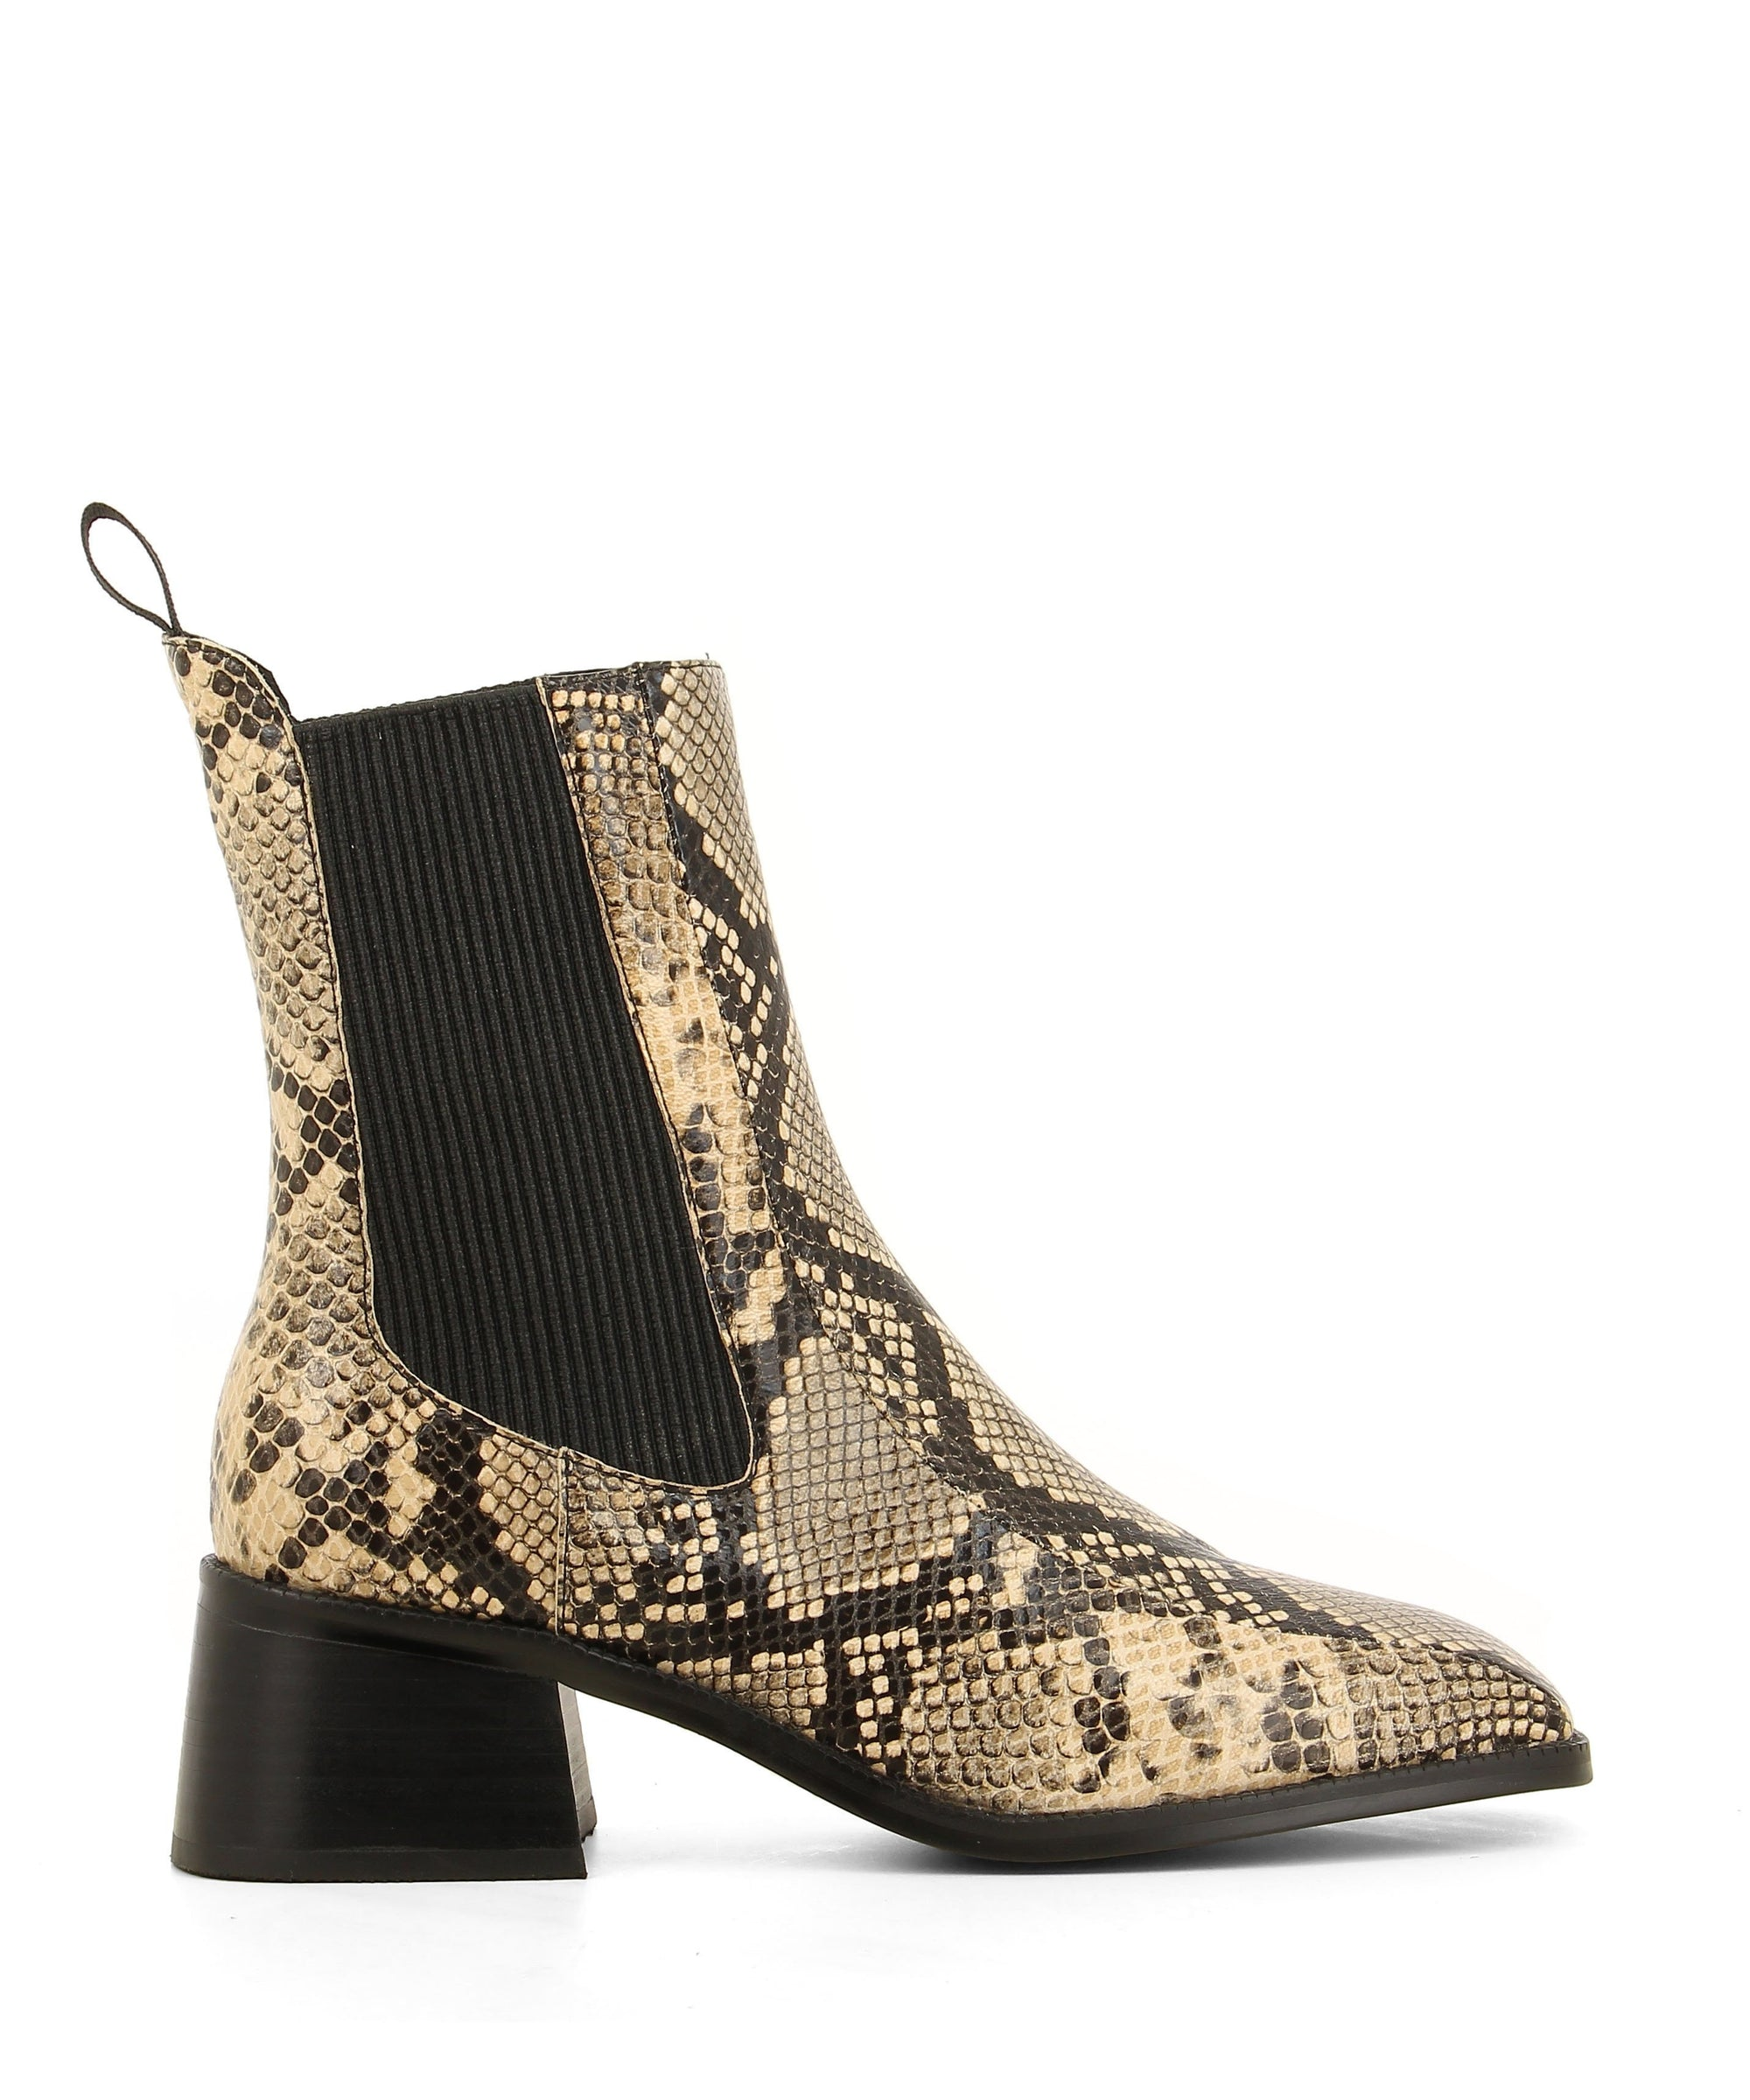 Classic natural snake print leather Chelsea boots that are a pull on style featuring elastic side gussets, a 5cm block heel and a square toe by 2 Baia Vista.